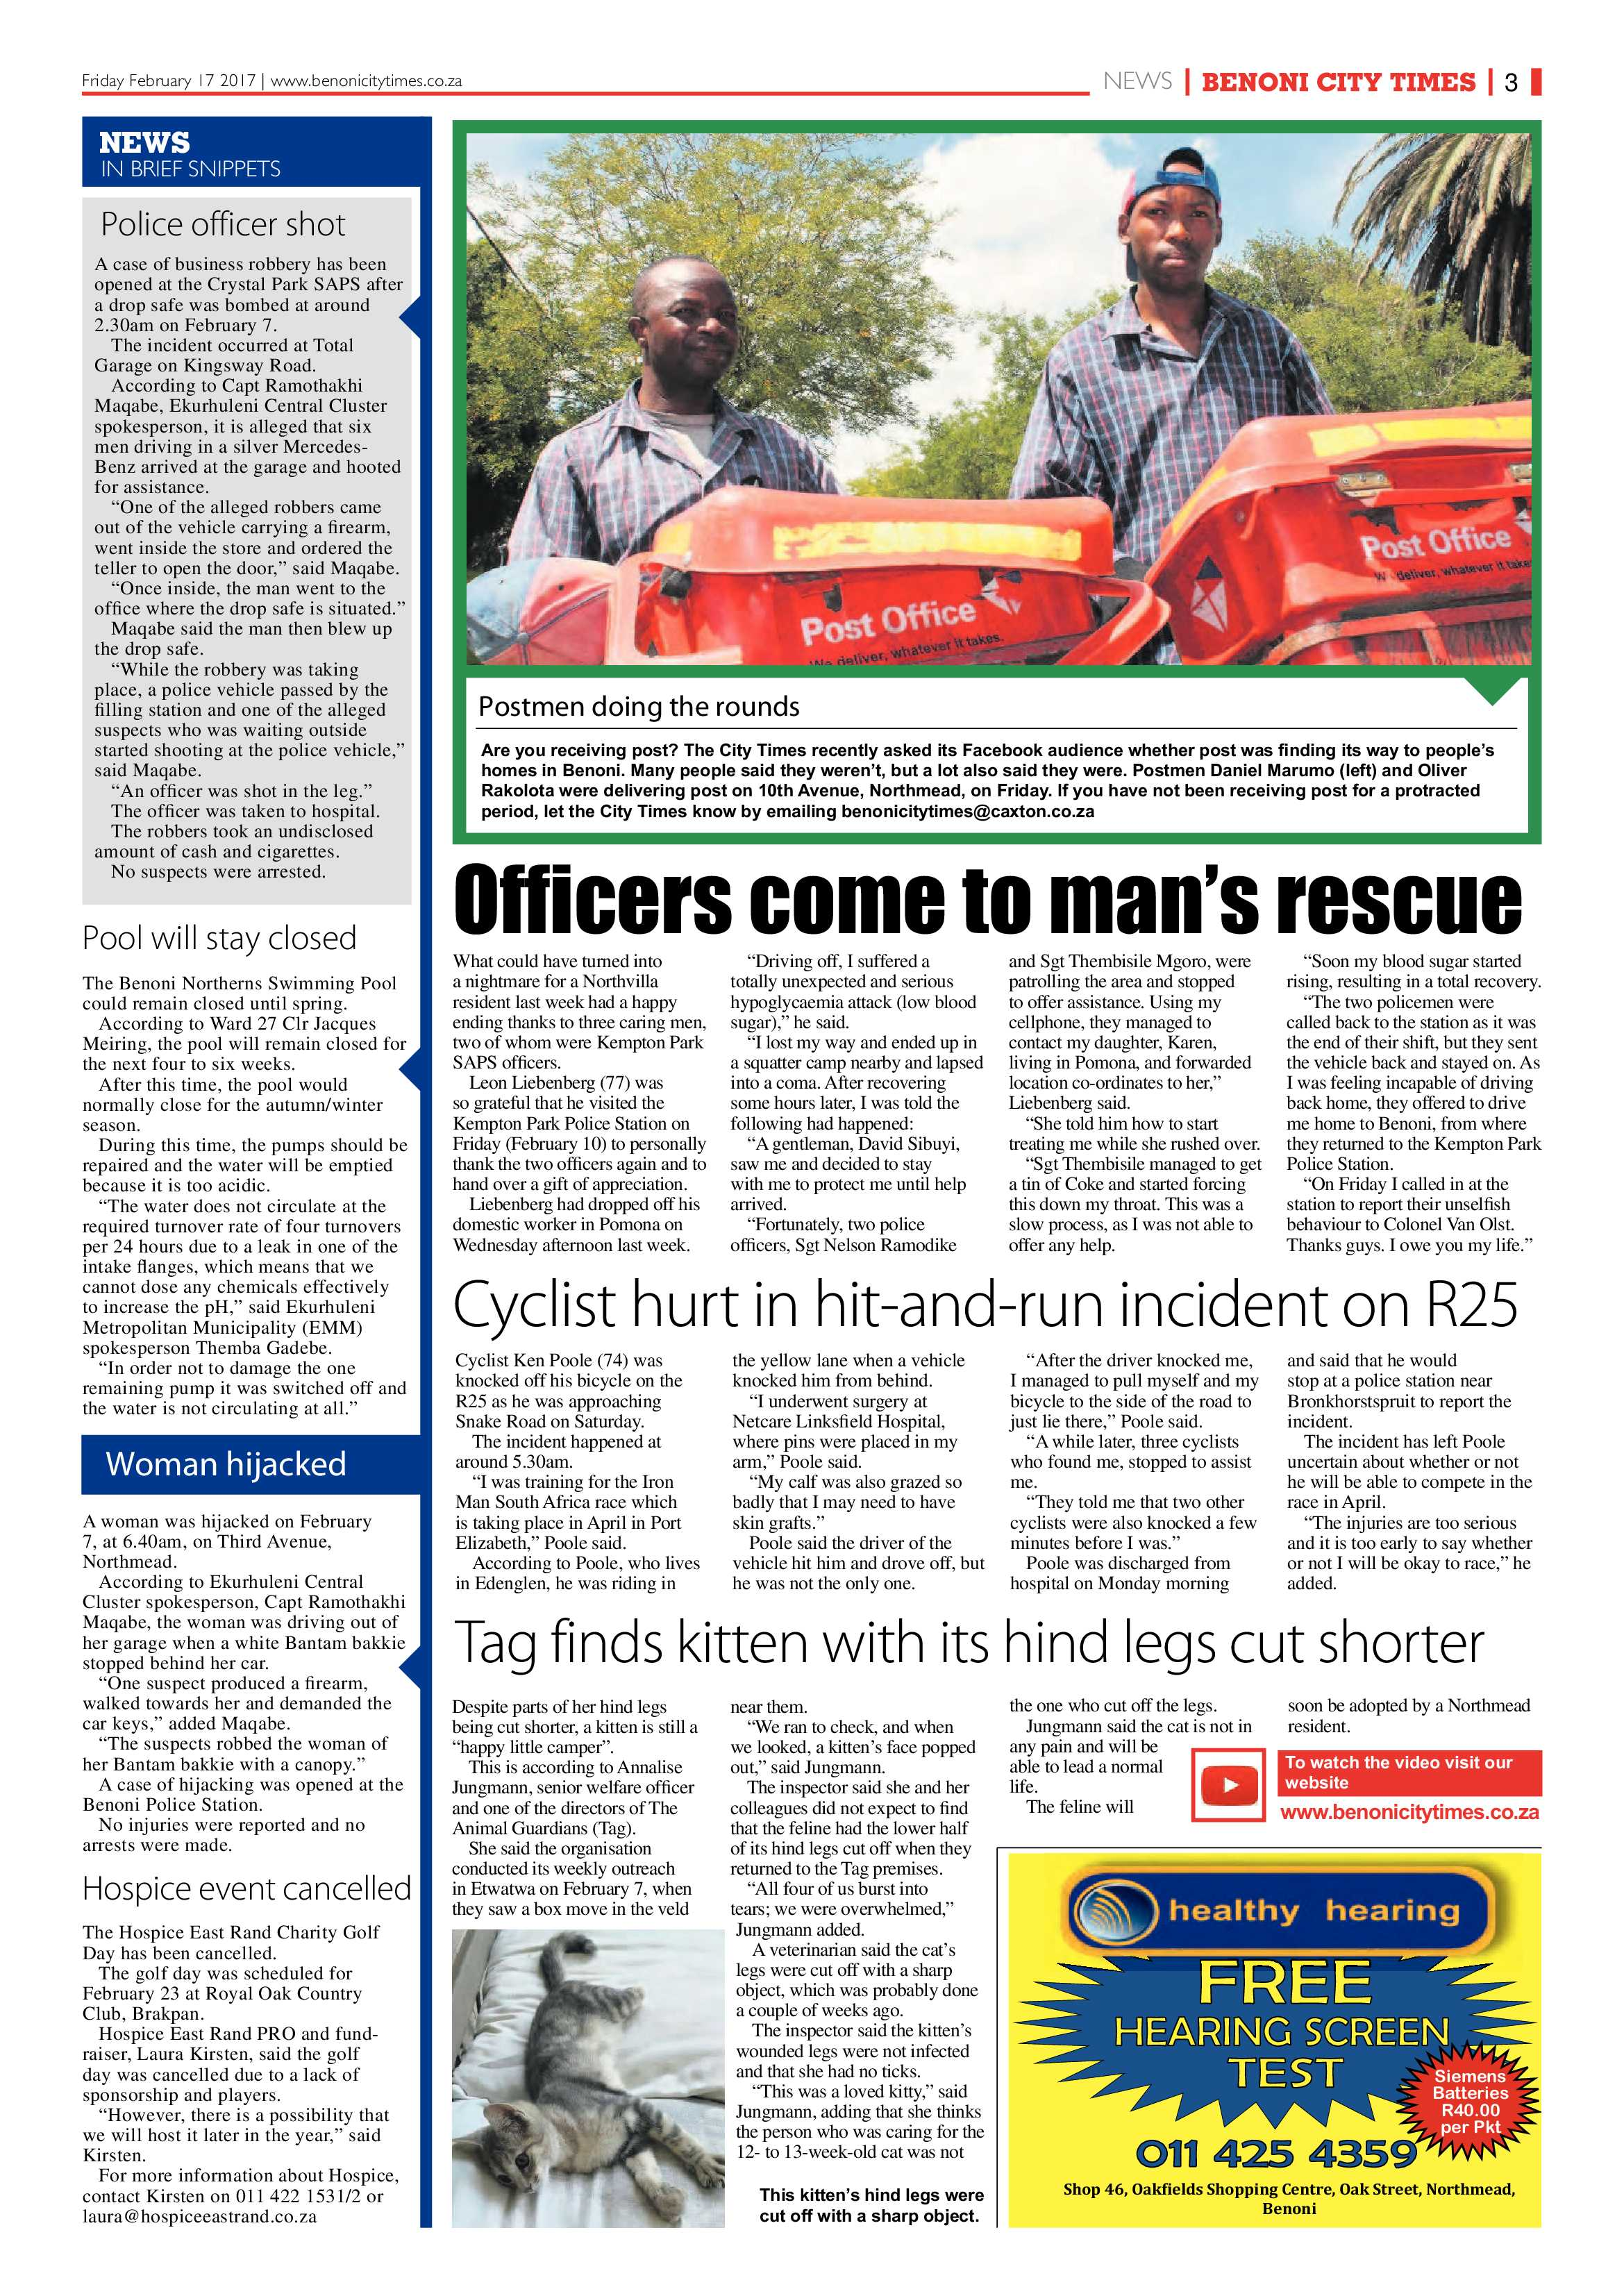 benoni-city-times-16-february-2017-epapers-page-3